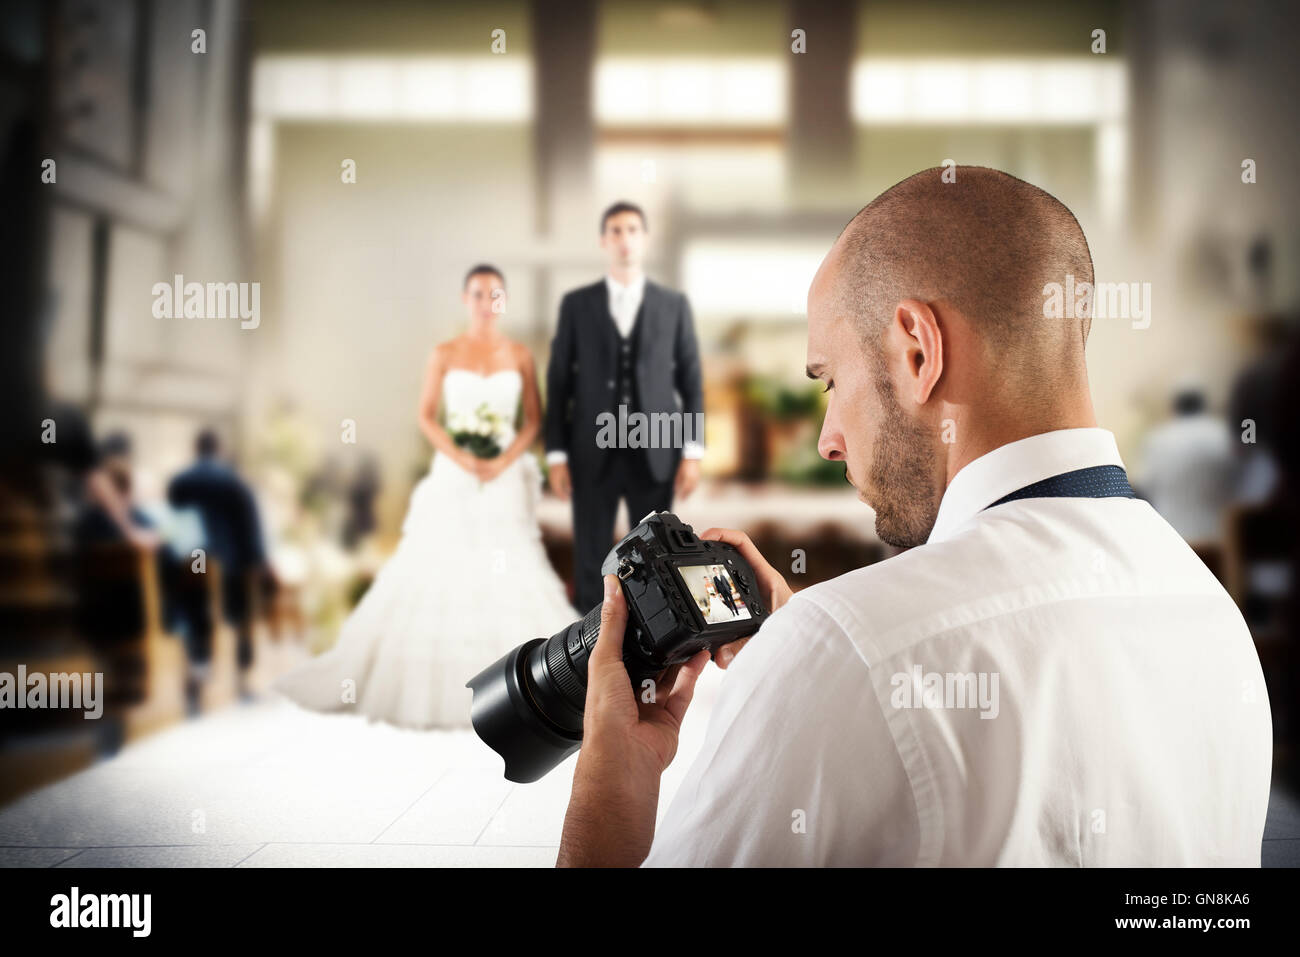 Professional photographer in a wedding - Stock Image